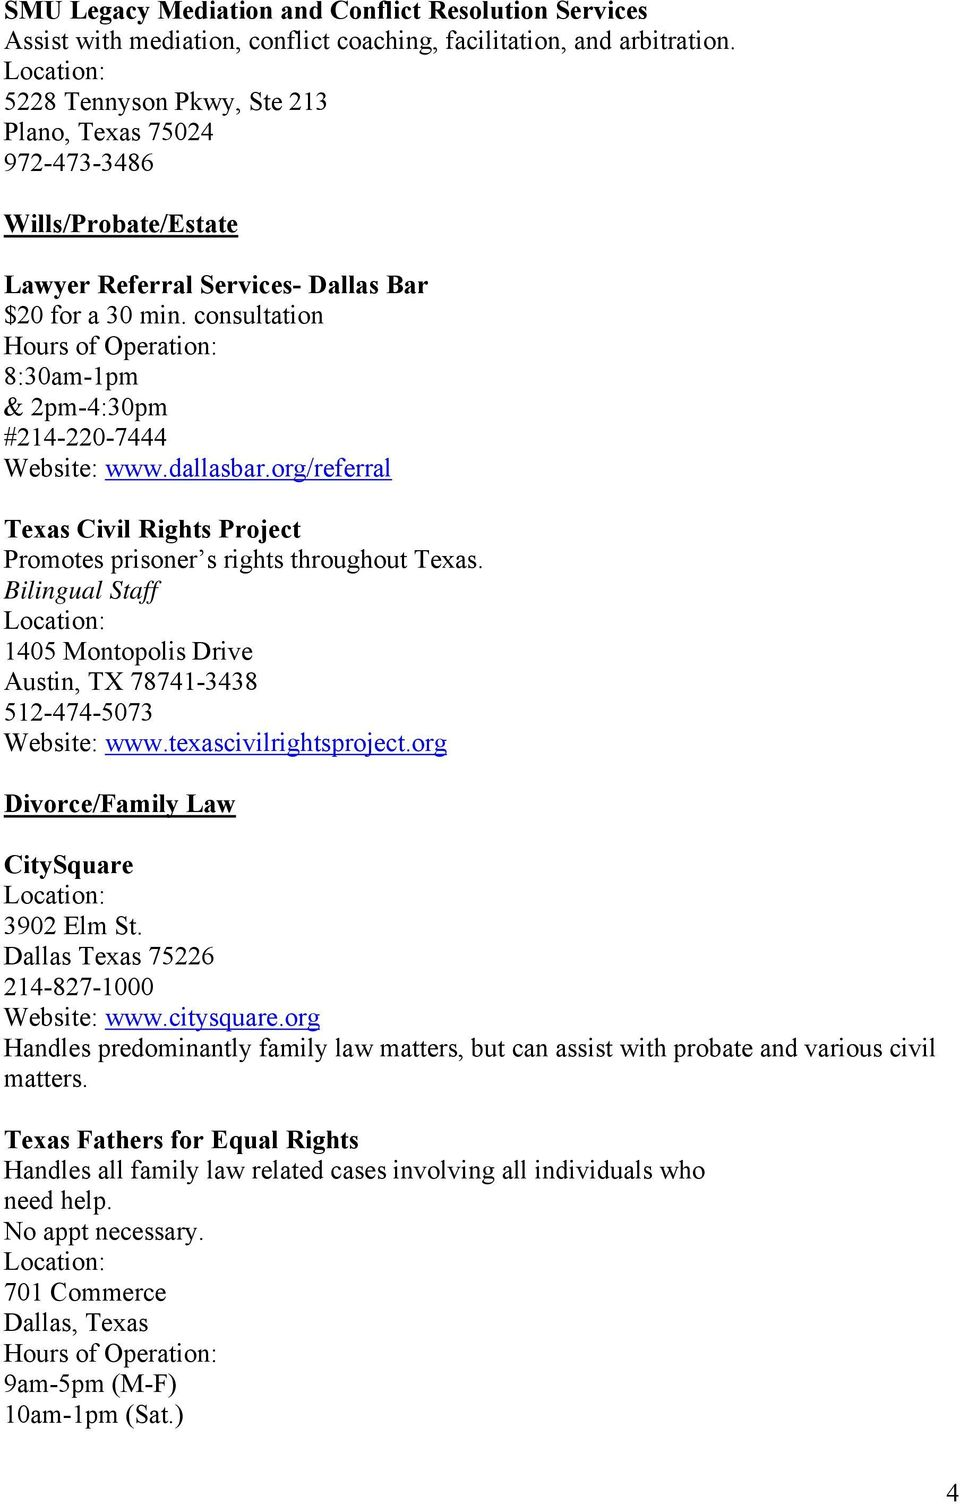 dallasbar.org/referral Texas Civil Rights Project Promotes prisoner s rights throughout Texas. Bilingual Staff 1405 Montopolis Drive Austin, TX 78741-3438 512-474-5073 Website: www.